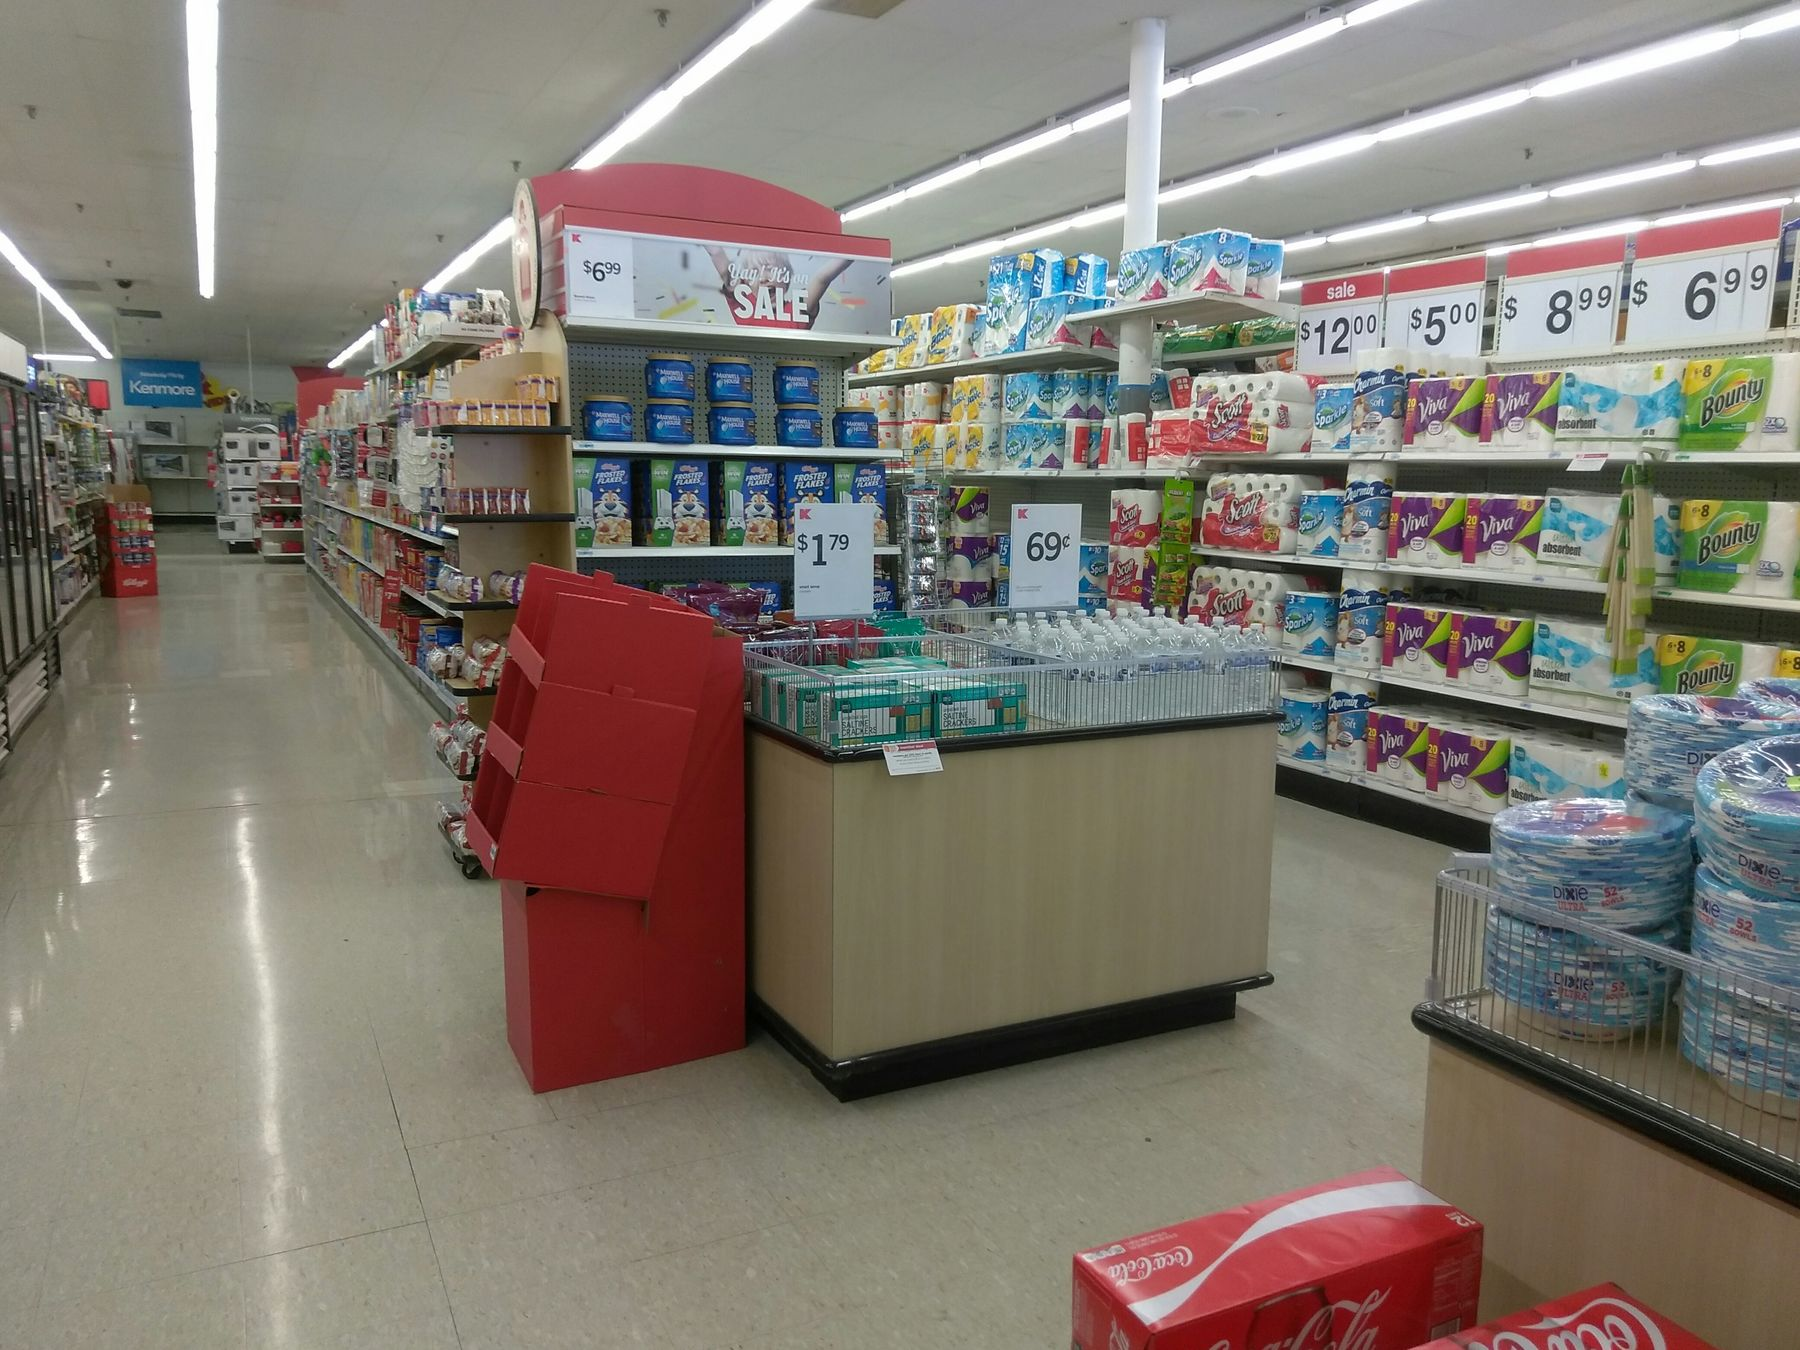 Business Finance And Industry Store Indoors  No People Business Day Supermarket